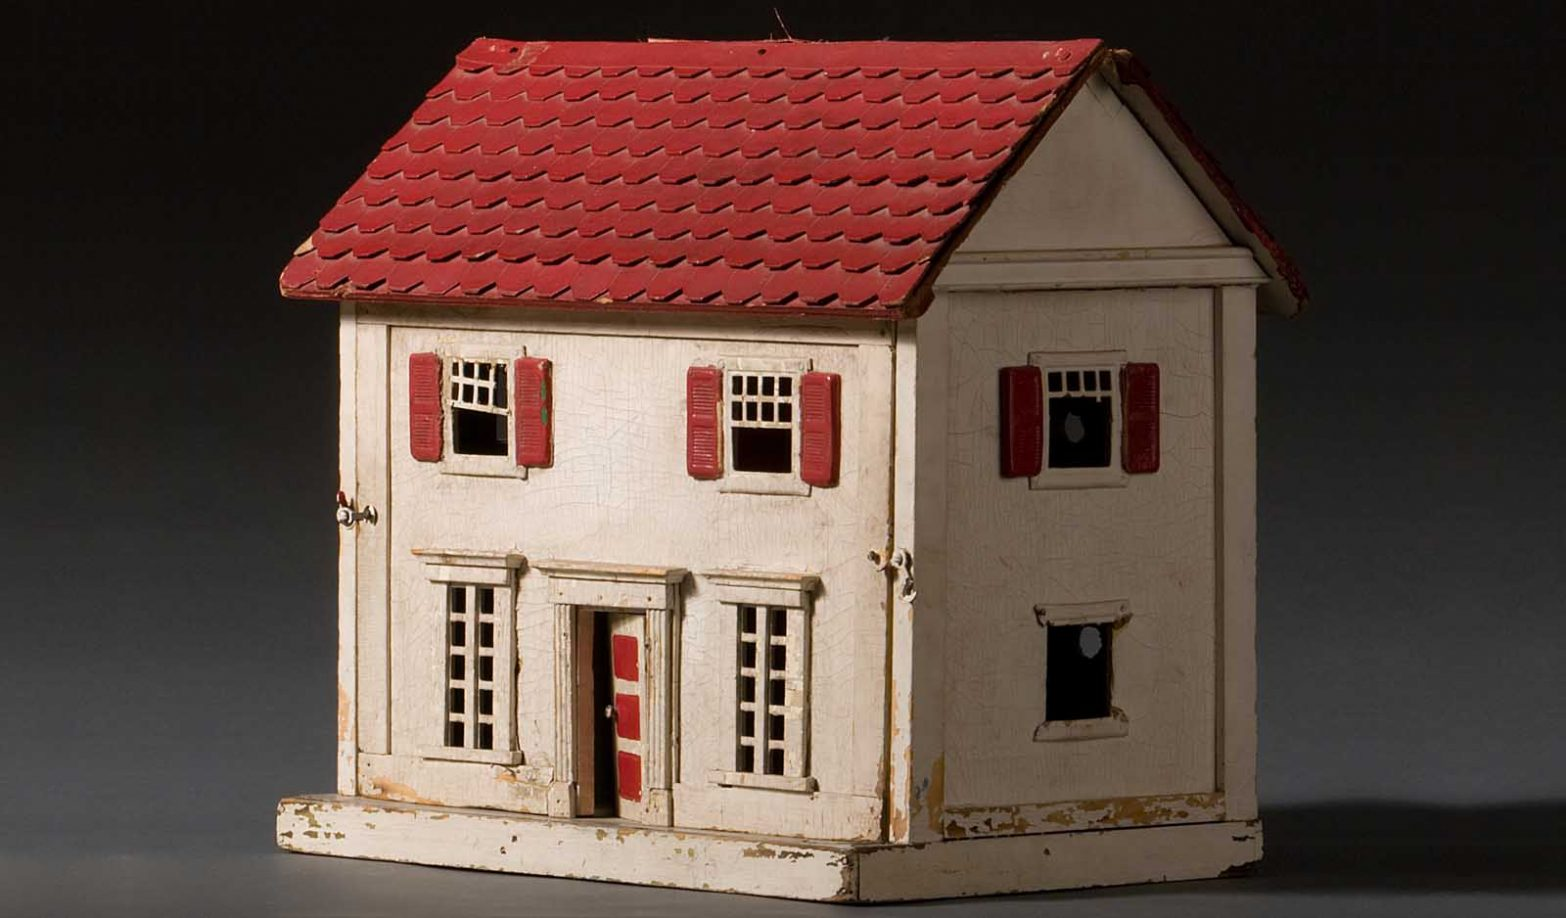 a doll s house as a -1- a doll's house by henrik ibsen 1879 translated by william archer characters torvald helmer nora, his wife doctor rank mrs linden  nils krogstad.